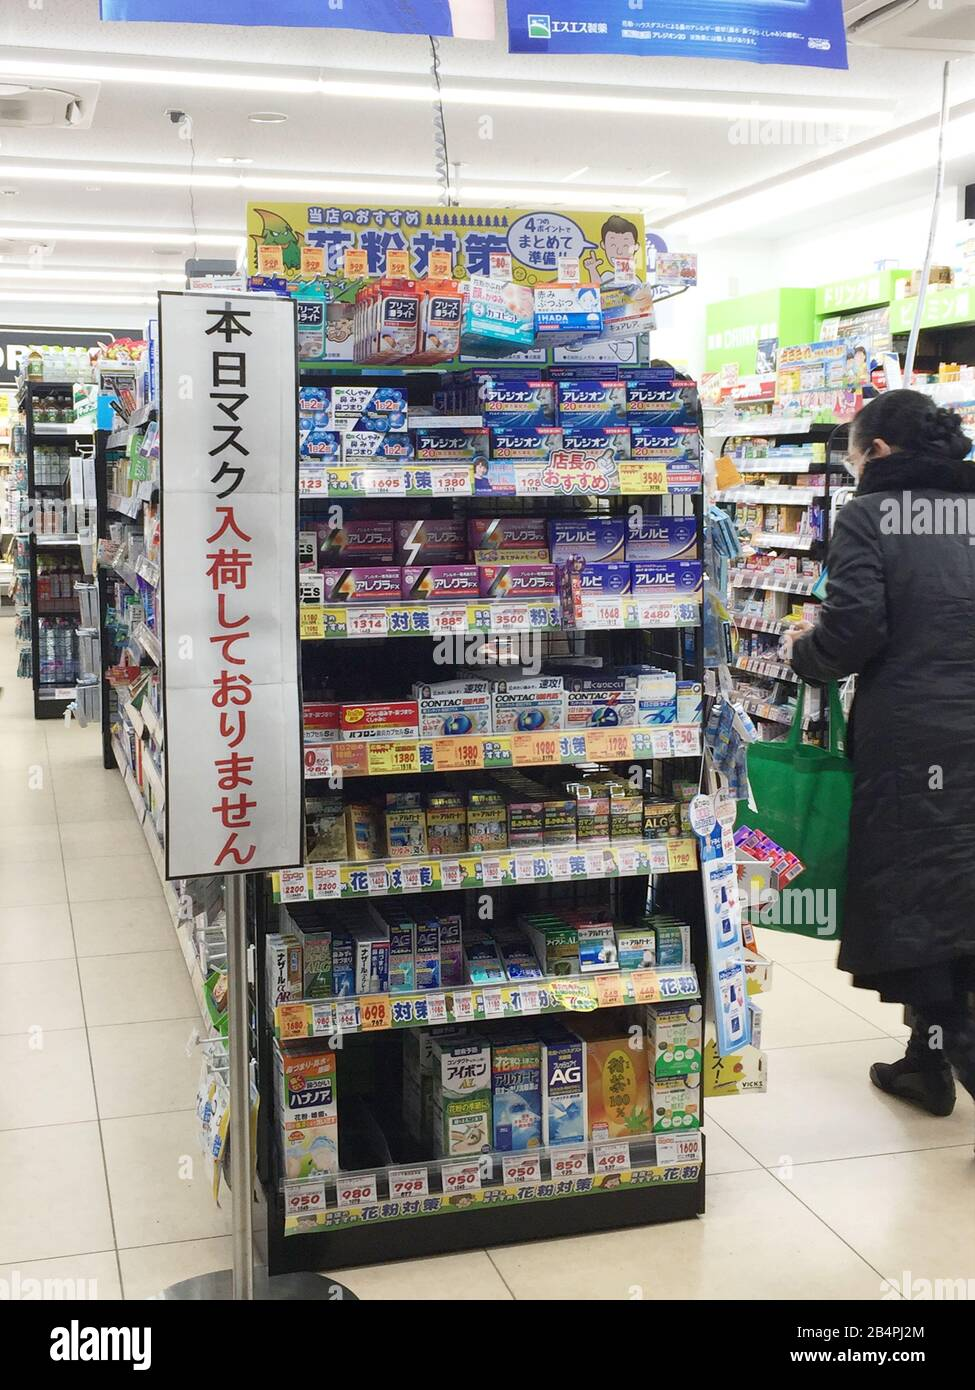 Spreading Coronavirus Covid 19 Has Caused Shortage Of Face Mask In Japan The Bulletin Board Saids Masks Are Not In Stock Stock Photo Alamy